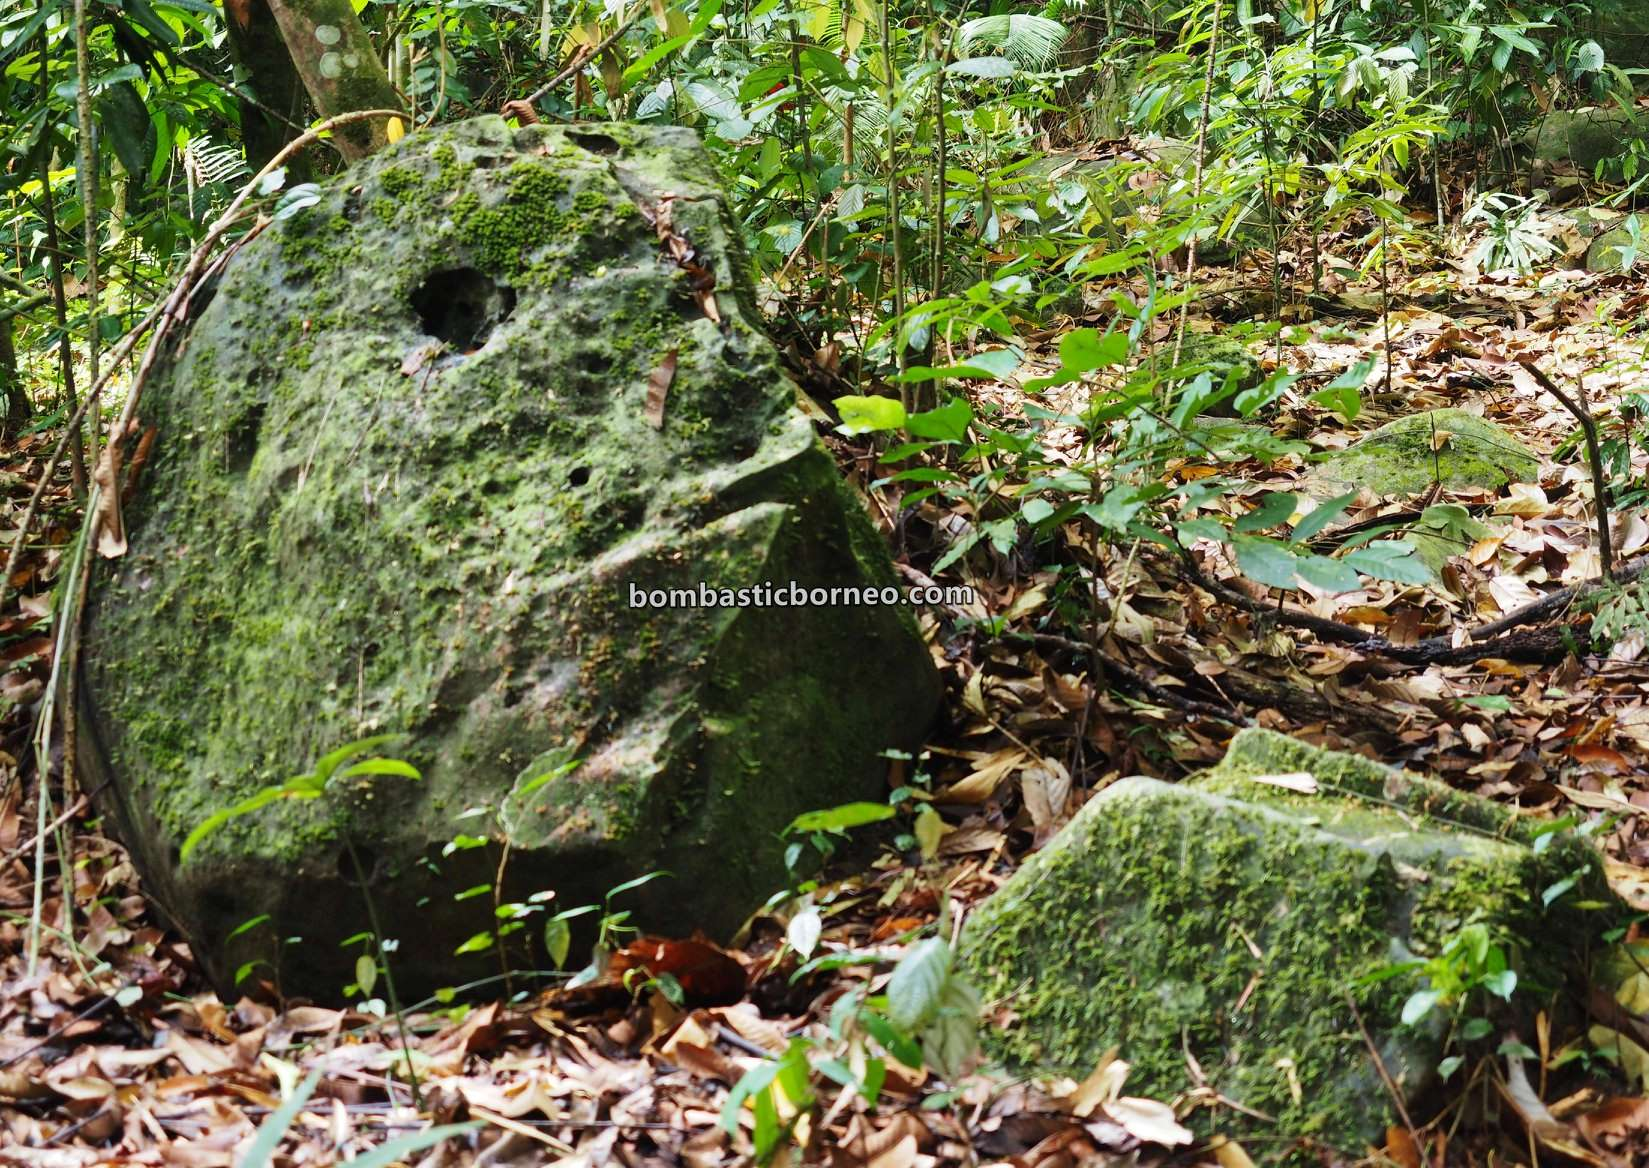 Pusat Sejadi Bukit Gemok, rainforest, adventure, nature, conservation, exploration, backpackers, destination, Malaysia, Tourism, tourist attraction, Trans Borneo, 跨境婆罗洲游踪, 斗湖旅游景点, 沙巴森林保护区,